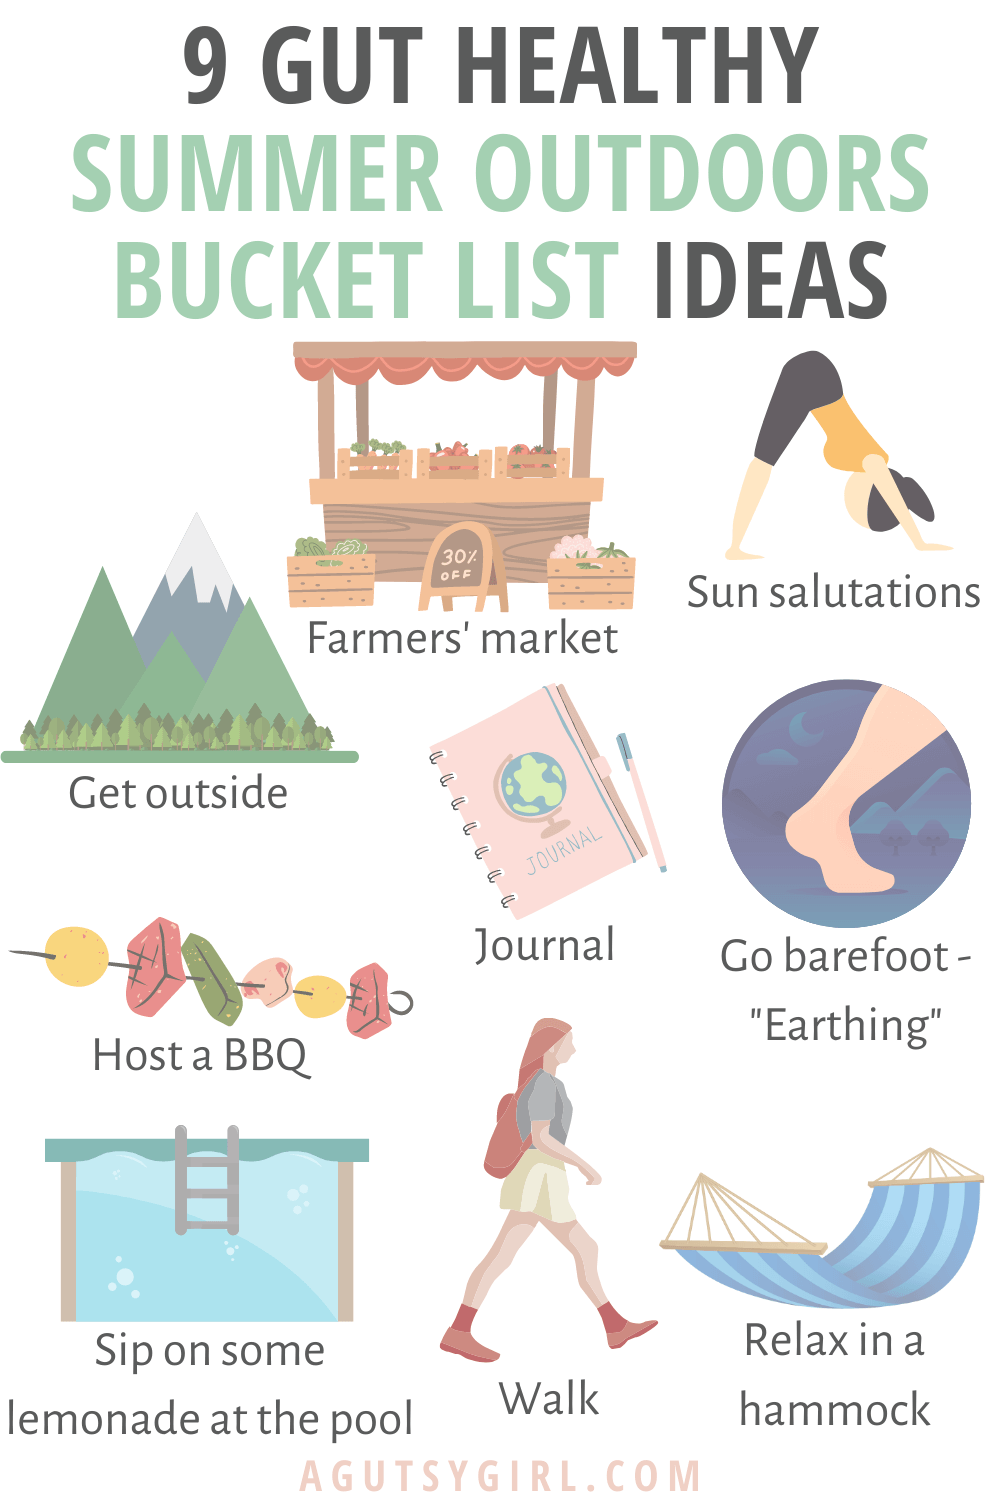 9 Gut Healthy Summer Outdoors Bucket List Ideas agutsygirl.com #guthealth #bucketlist #healingjourney